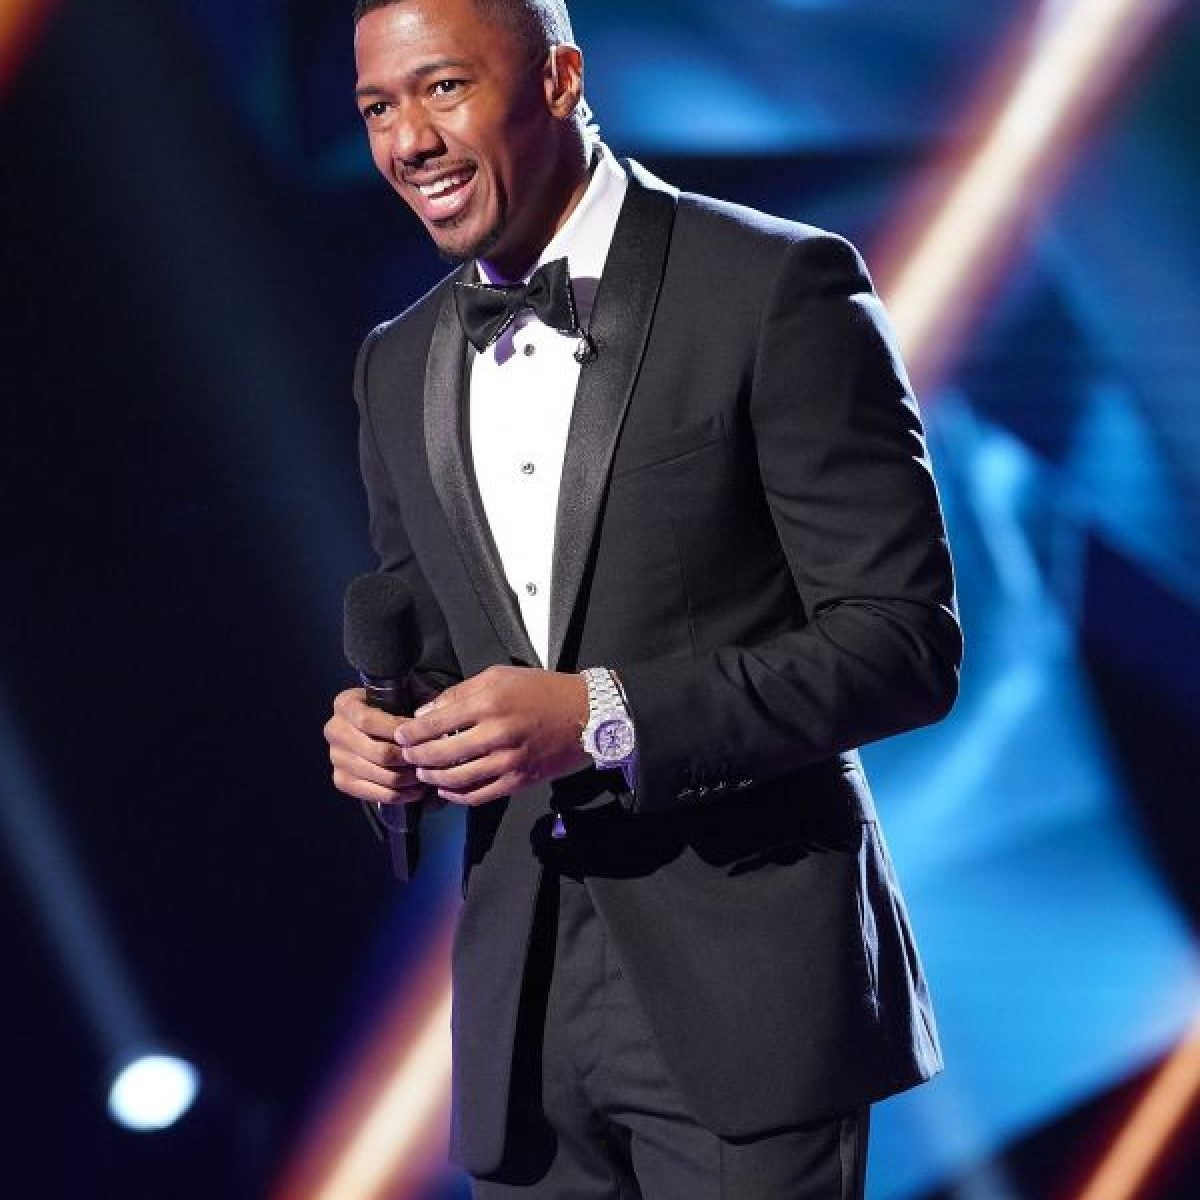 Nick Cannon Expecting Twin Boys With Abby De La Rosa Months After Welcoming A Daughter With Brittany Bell